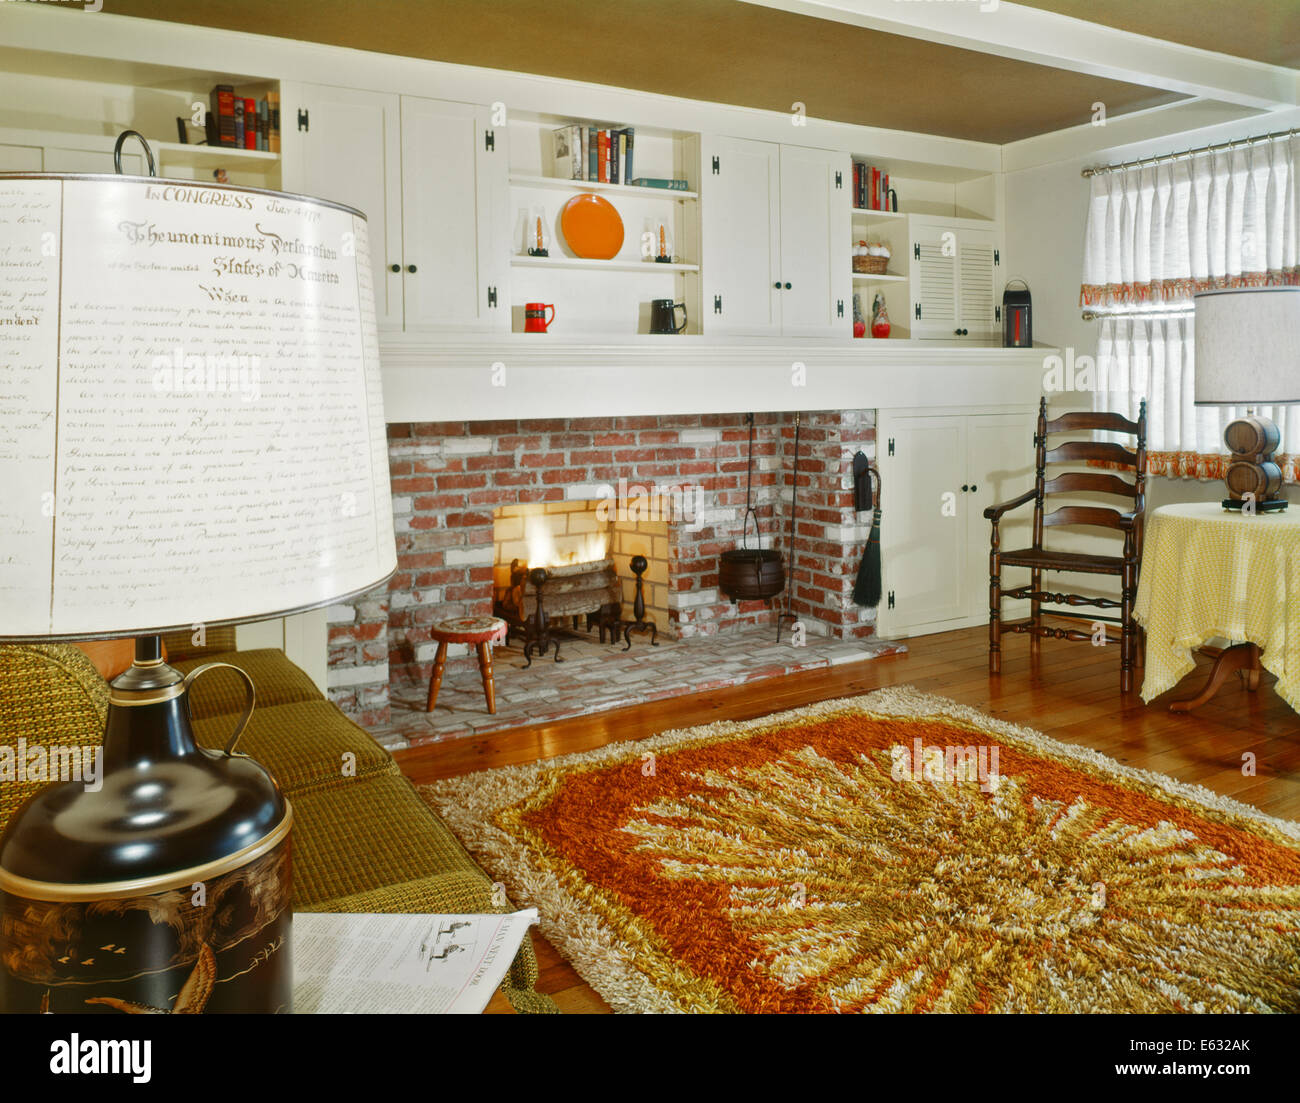 Living Rooms With Area Rugs 1960s Interior Of Living Room With Shag Area Rug Fireplace And